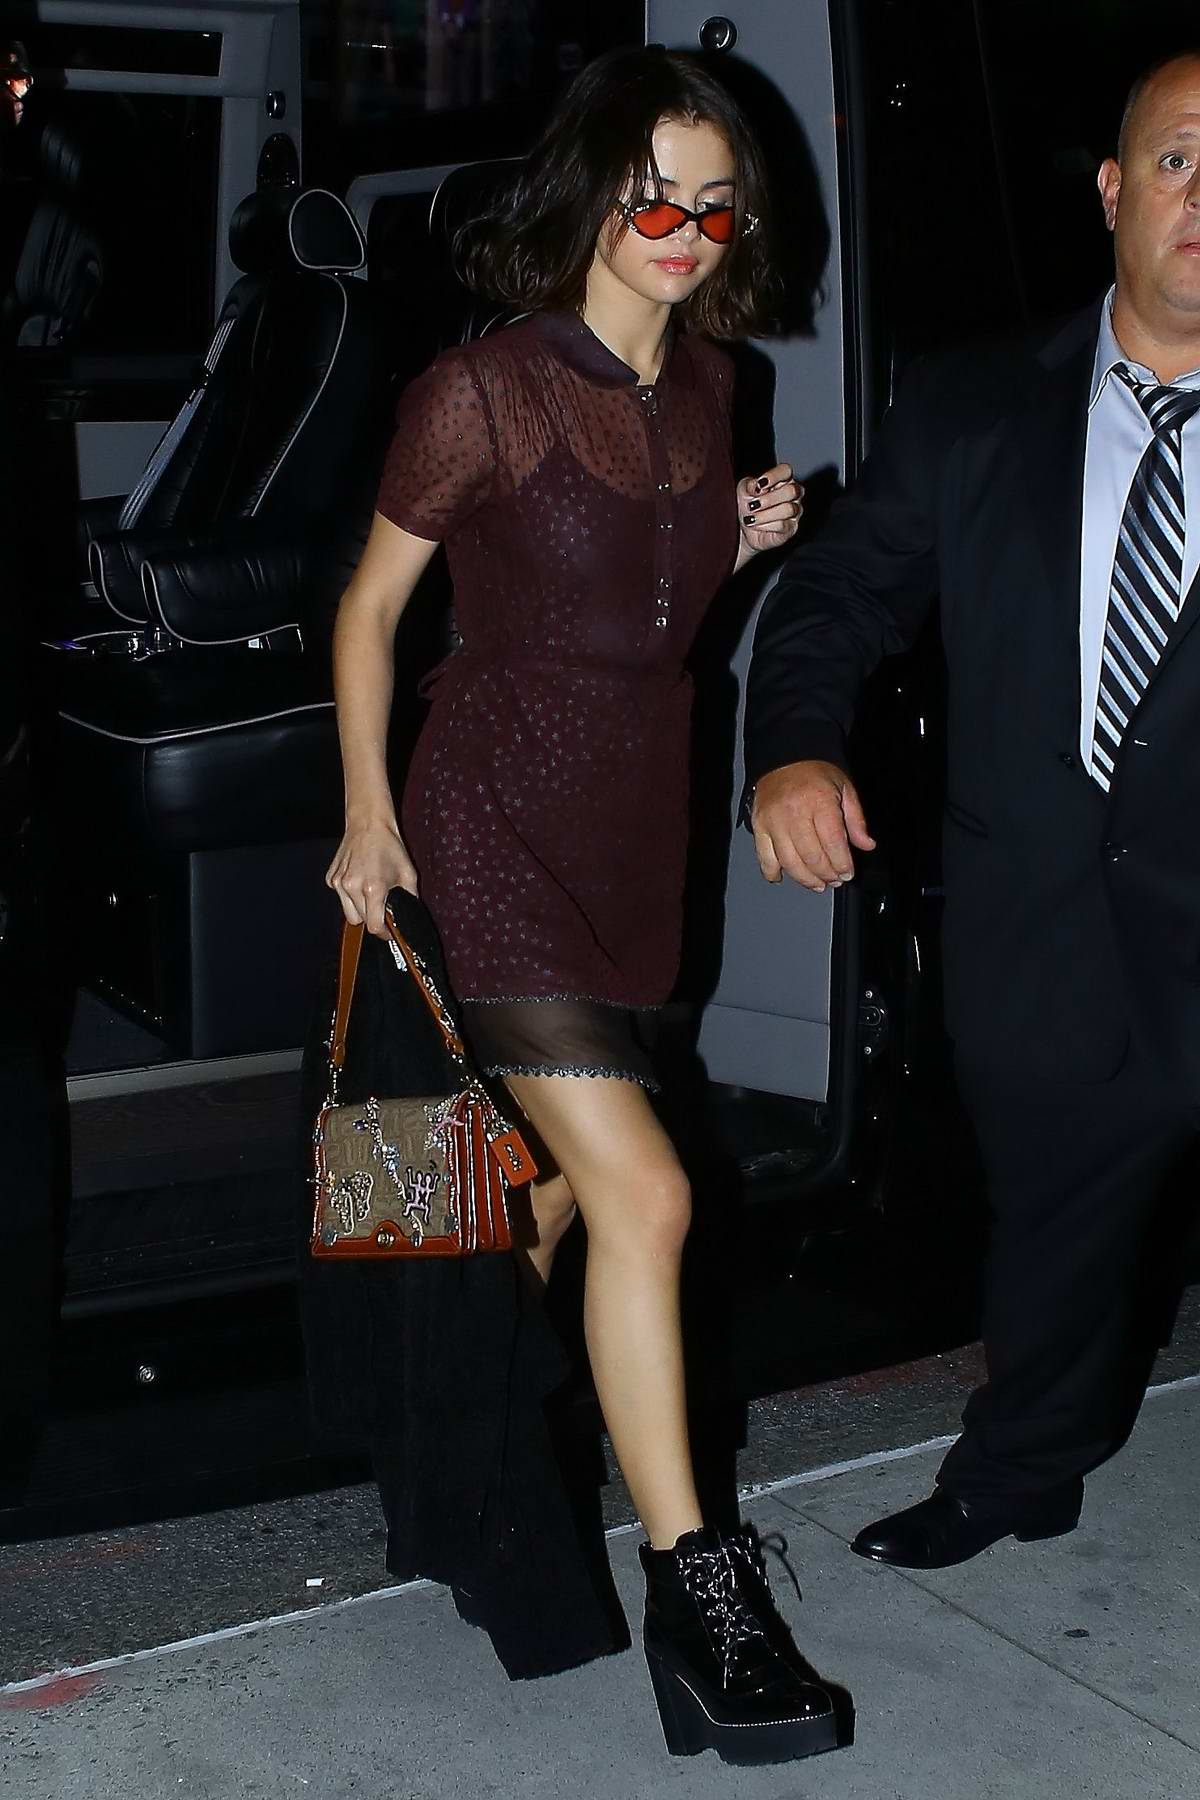 Selena Gomez arriving at her apartment in New York